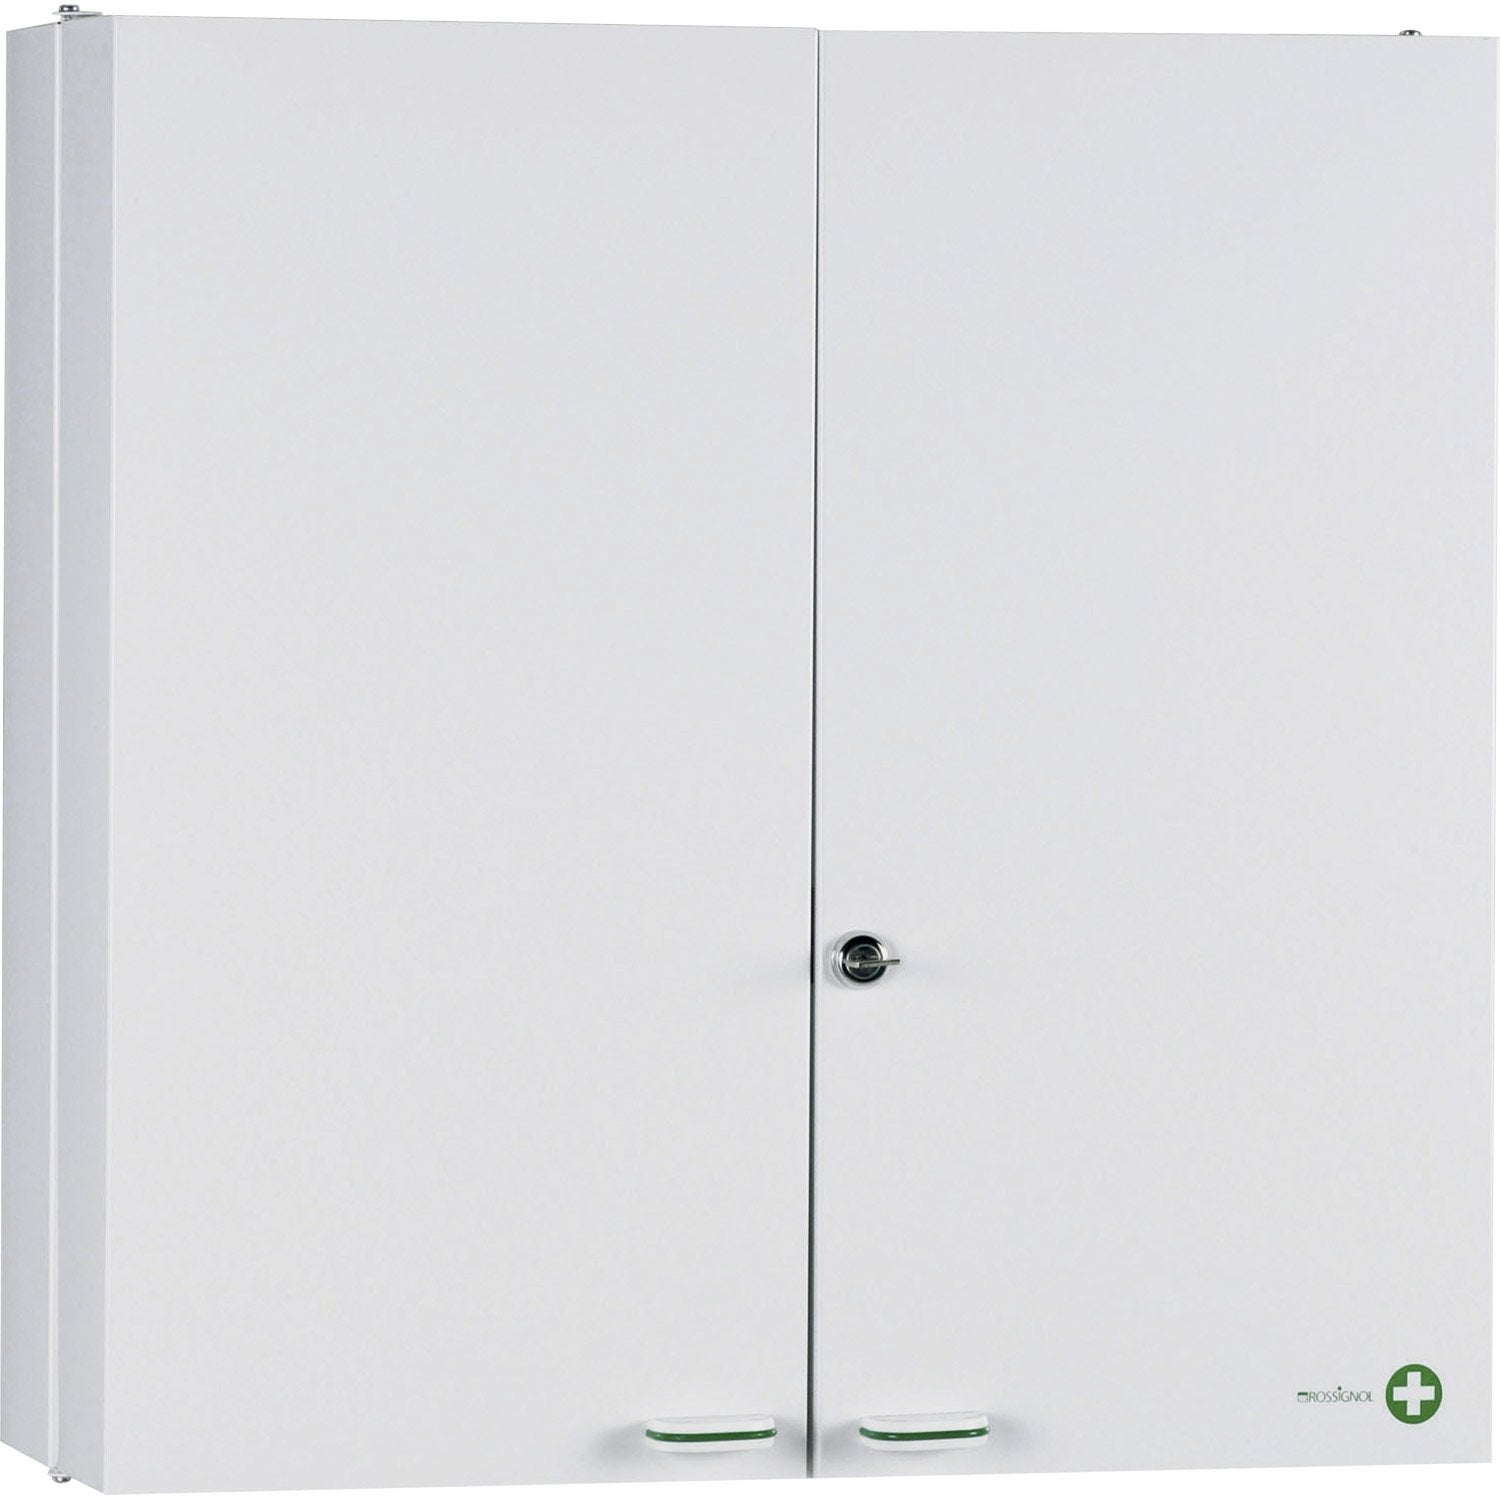 armoire pharmacie blanc cm rossignol espace leroy merlin. Black Bedroom Furniture Sets. Home Design Ideas